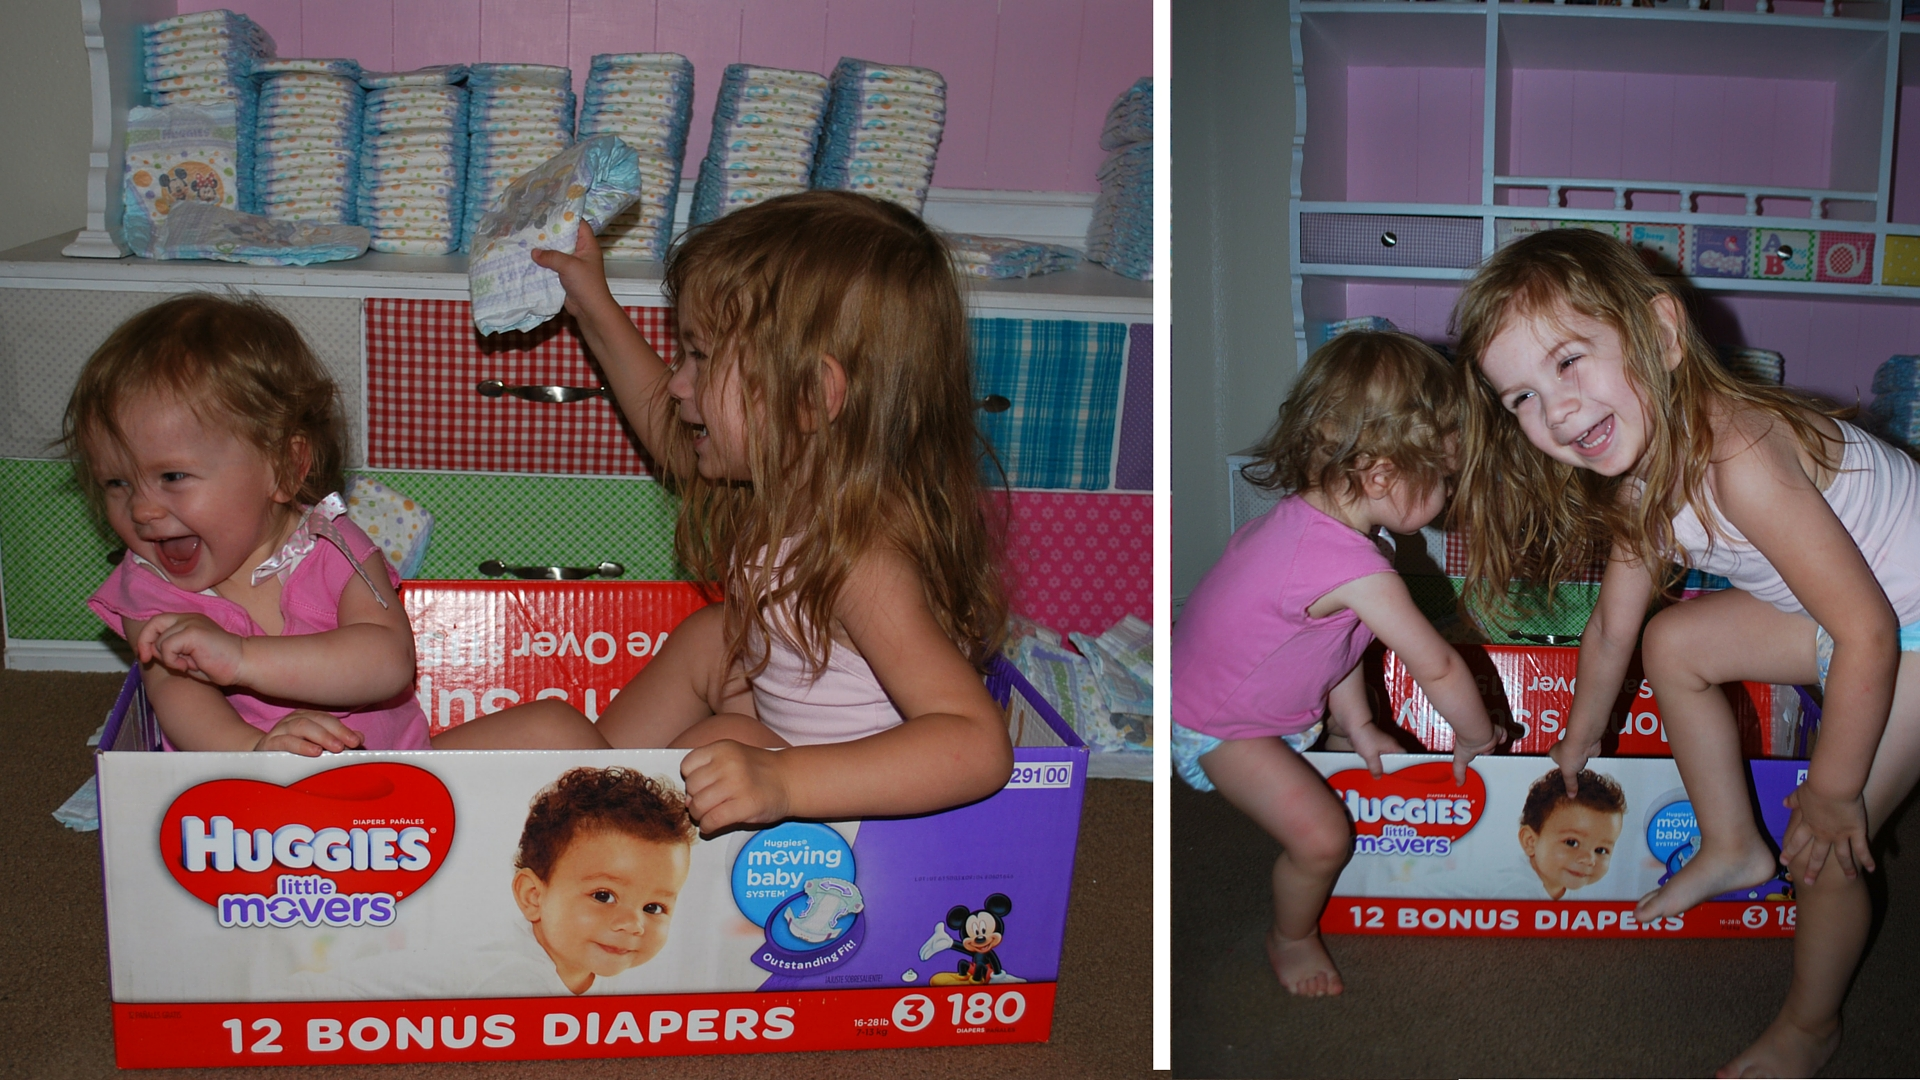 Through the climbing, playing and fun - Huggies Little Movers stay in place and keep them dry! EveryMomDay.com